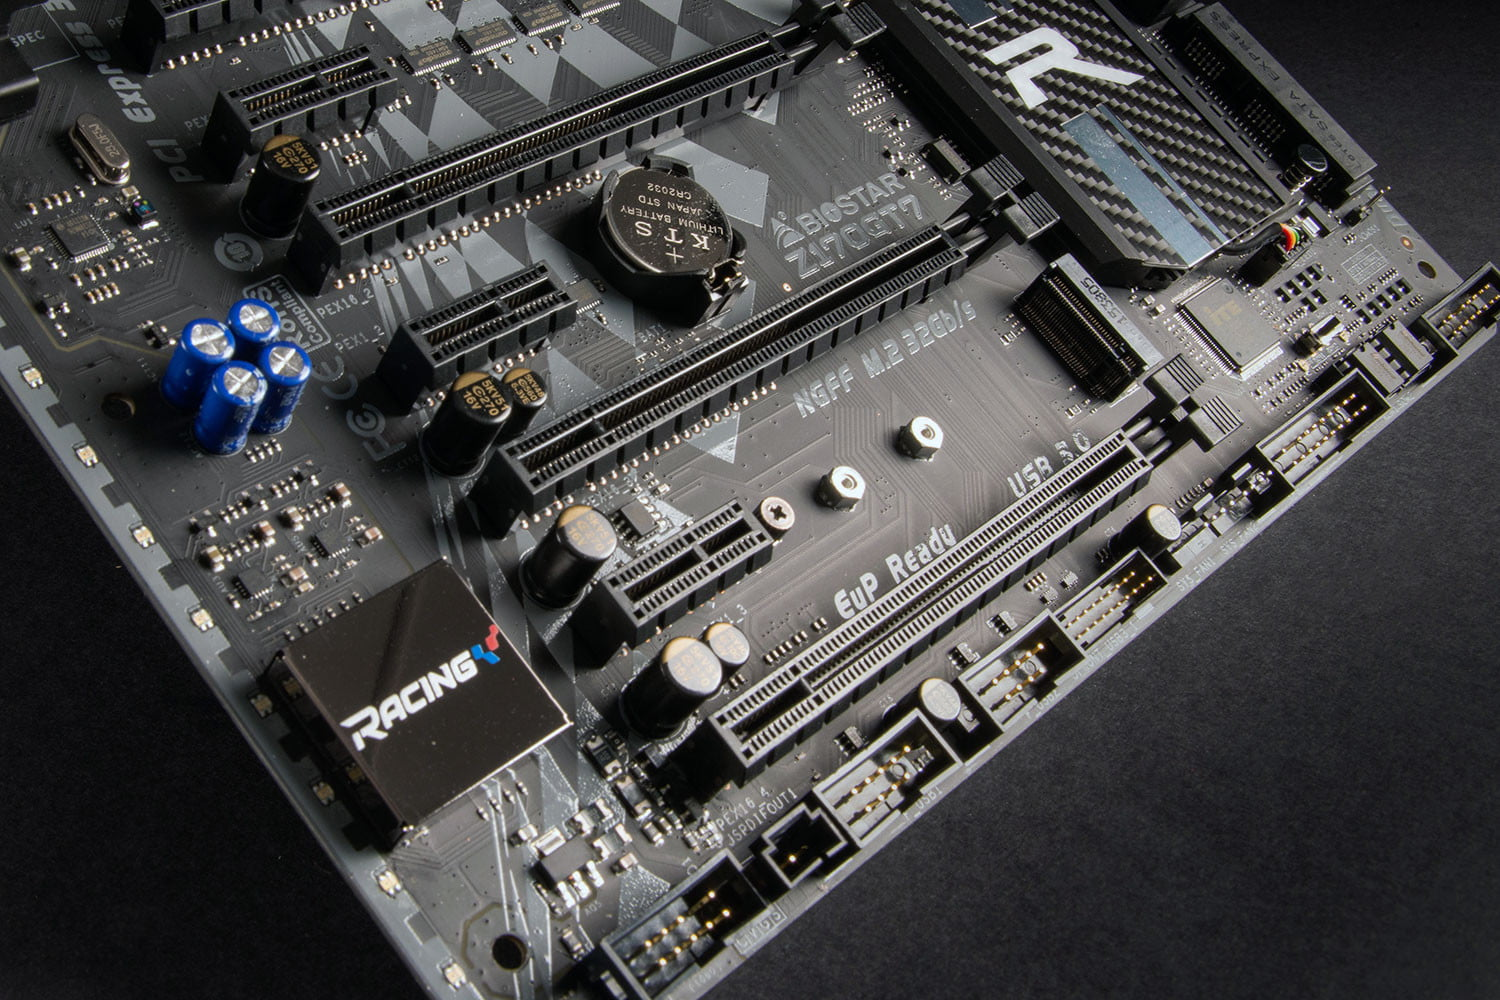 BIOSTAR Z170GT7 MOTHERBOARD DRIVERS FOR WINDOWS 7